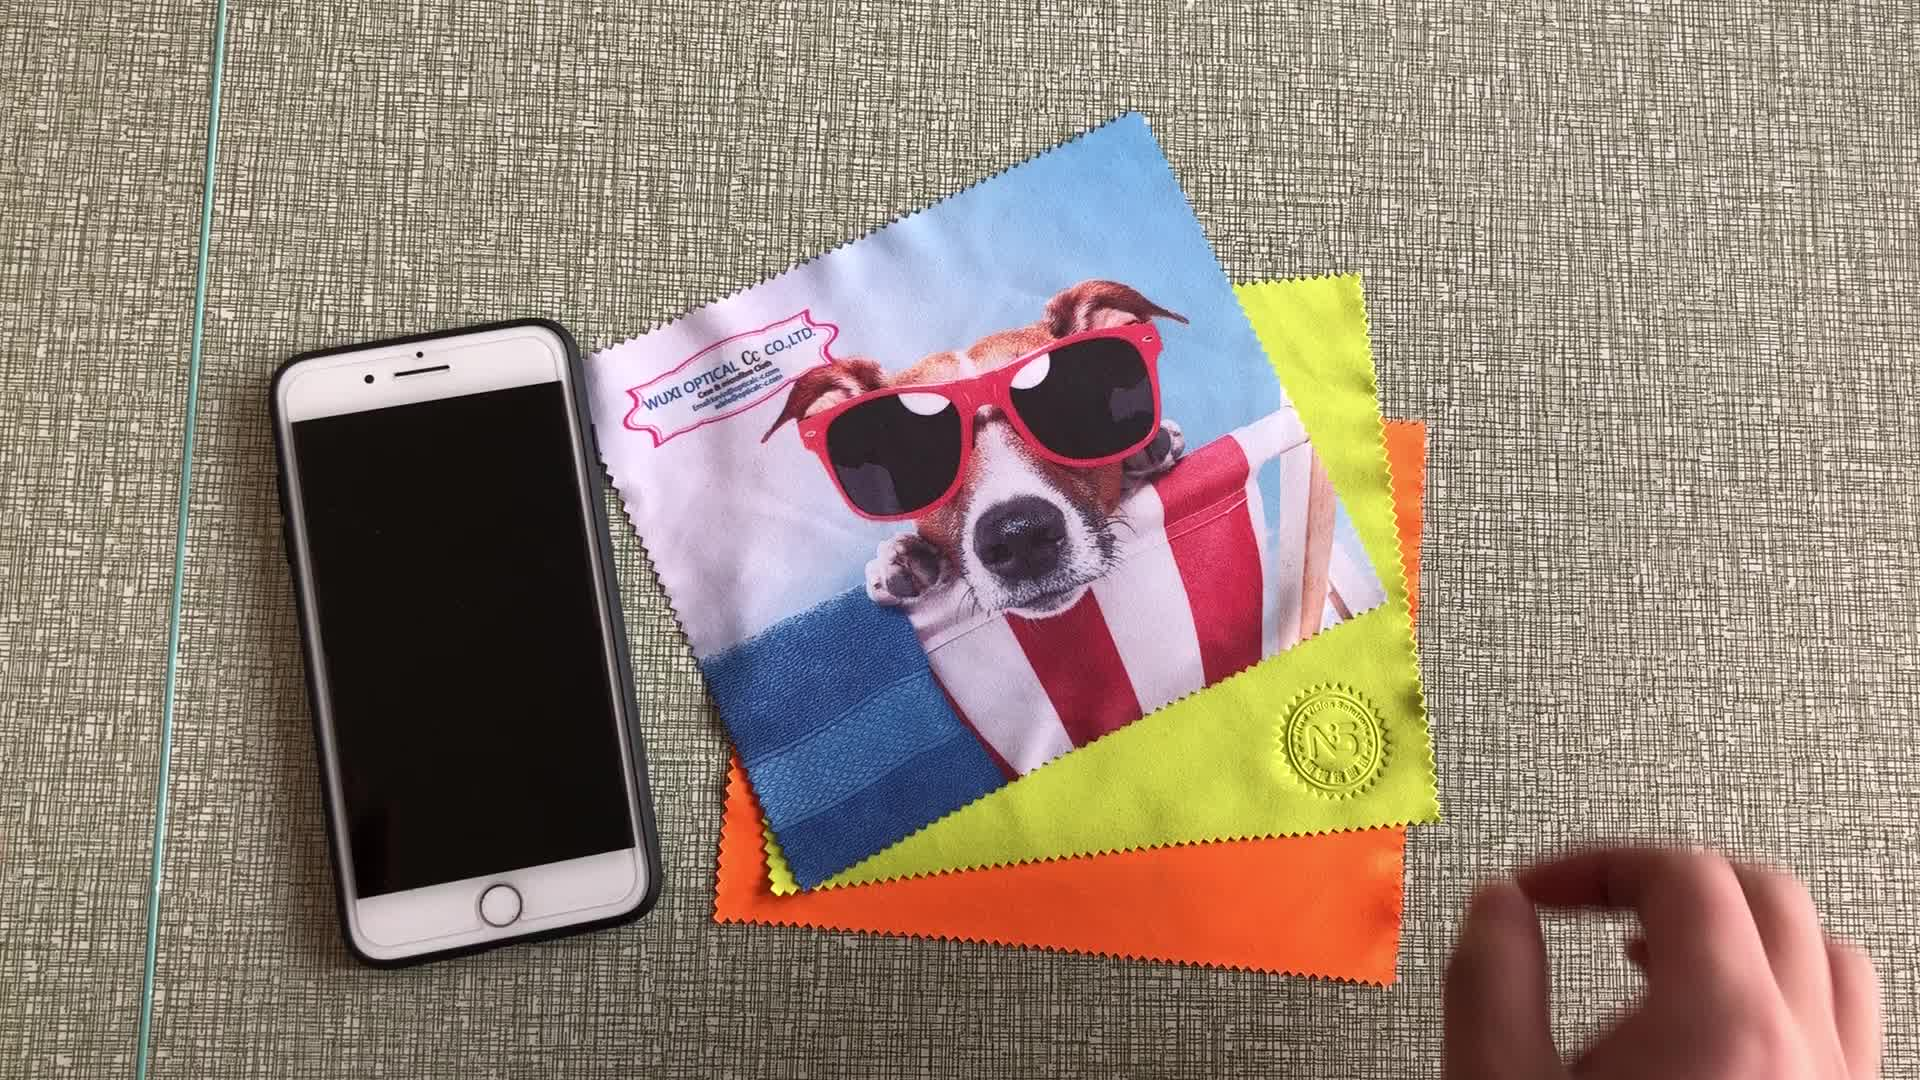 Microfiber Cleaning Cloths For Cell Phones, Laptops, Tablets, Glasses